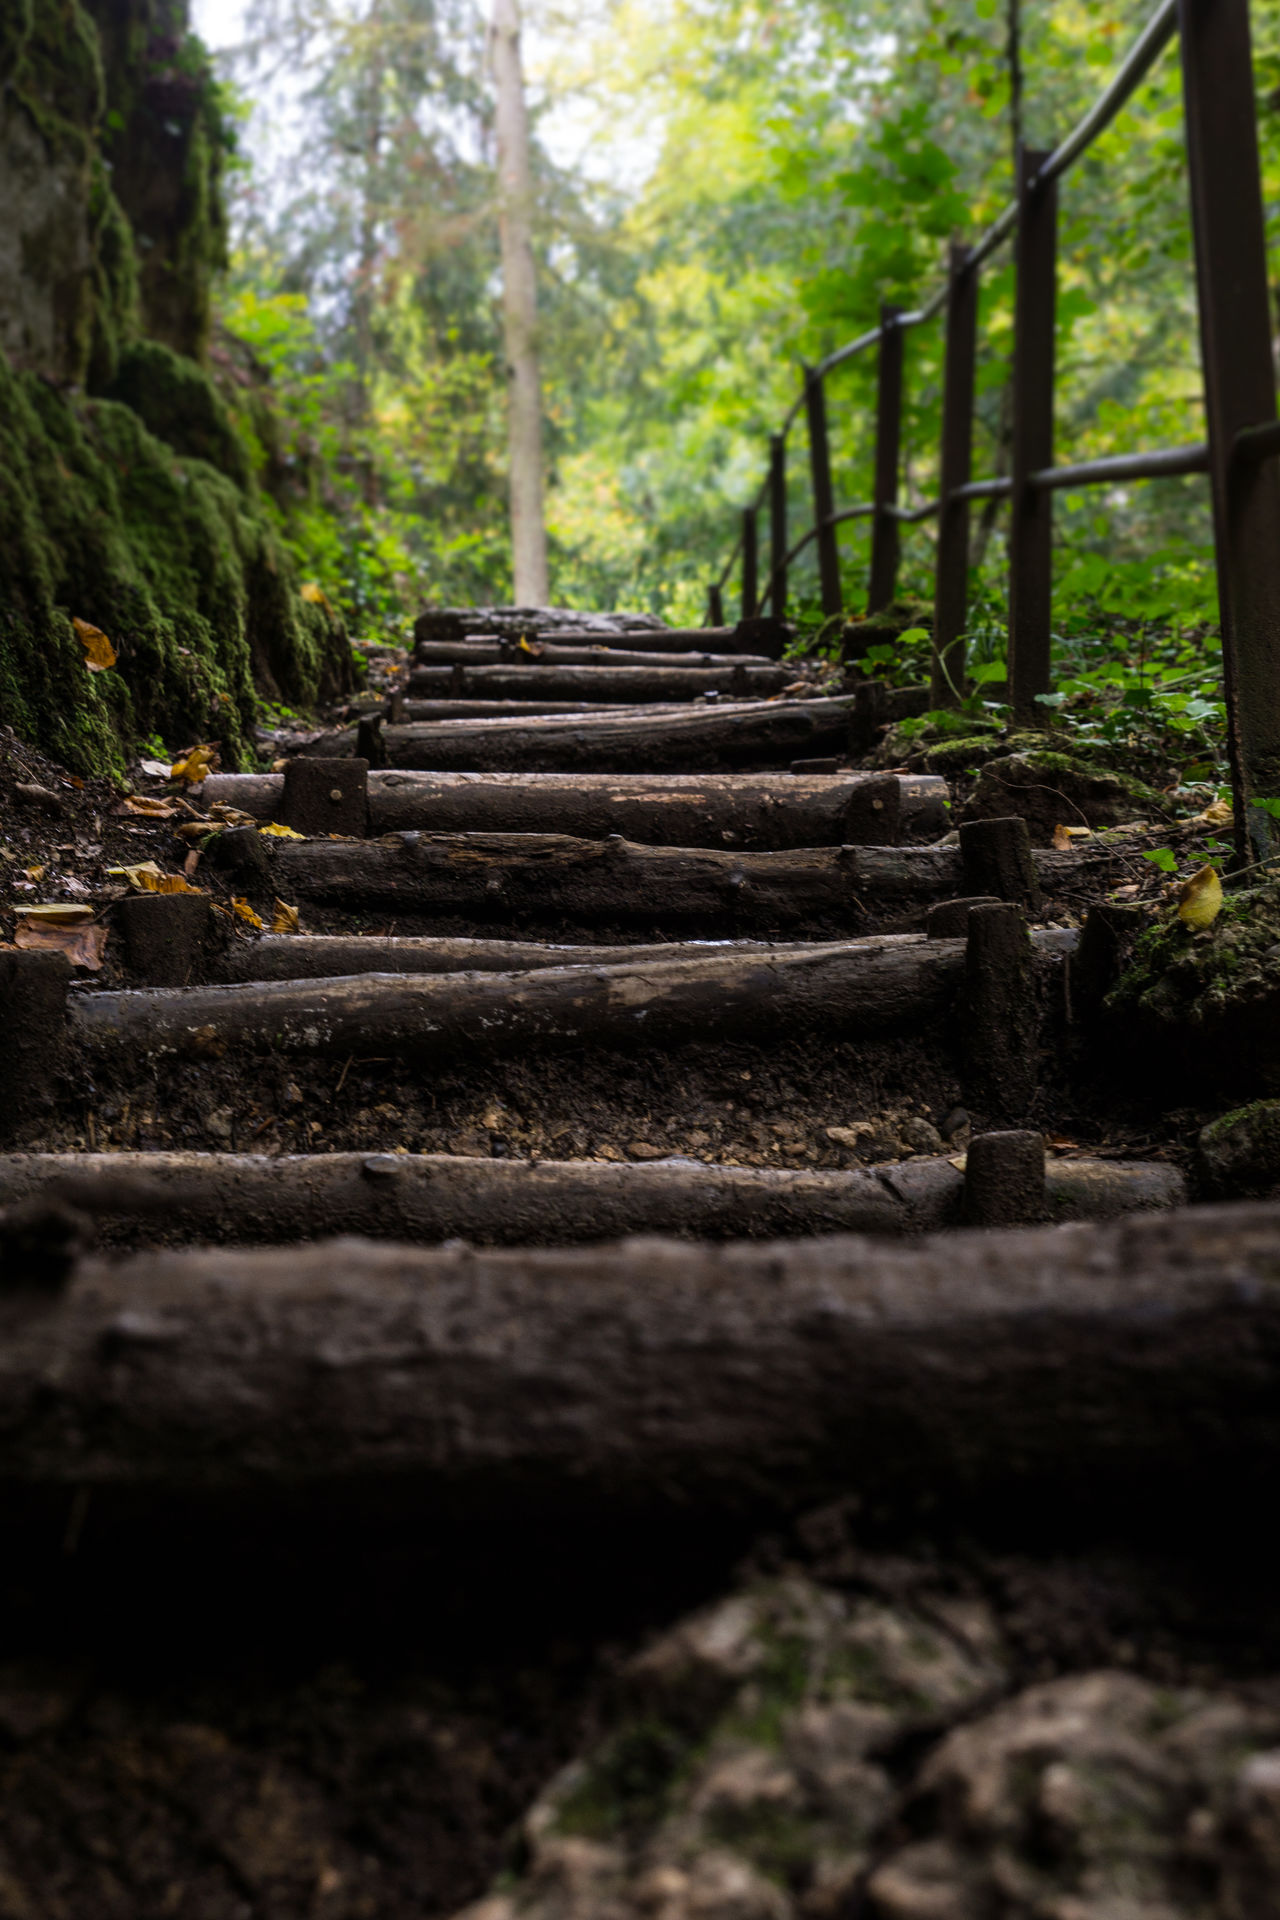 Stairway to ... Climb Day Forest Foreward Frog Perspective Hard Way Move Nature Nature Stairway No People Outdoors Path Rough Route Staircase Stairway Stairway To Nature Stairway To Nowhere Stairways Steps Steps And Staircases The Way Forward Tranquility Tree Up